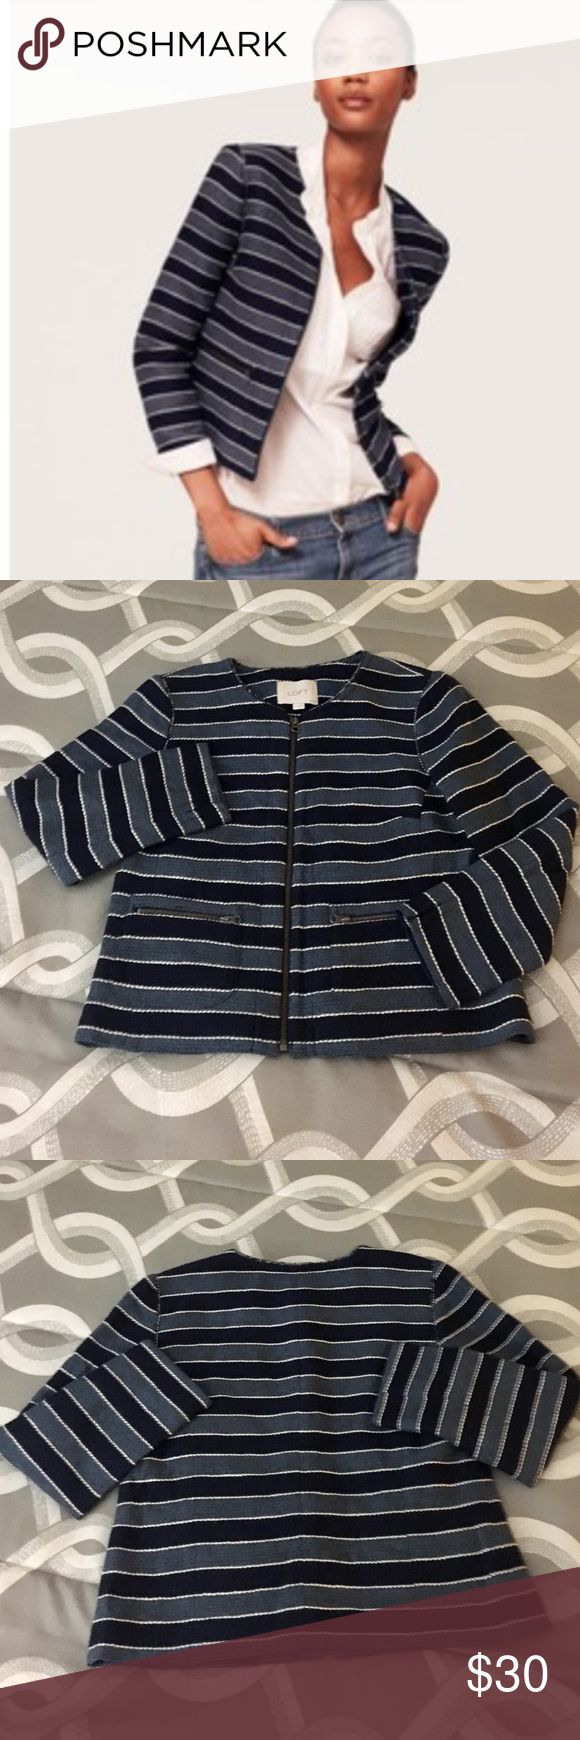 "NWOTs LOFT ""Boucle"" Jacket NWOTs LOFT ""Boucle"" Cardigan Jacket.  Classy blend of blue and white horizontal stripes.  Zip up front closure.  When lying flat, Bust is 16"".  Sleeve is 20"" & Length of jacket is 20"".  Size 2P. LOFT Jackets & Coats Blazers"